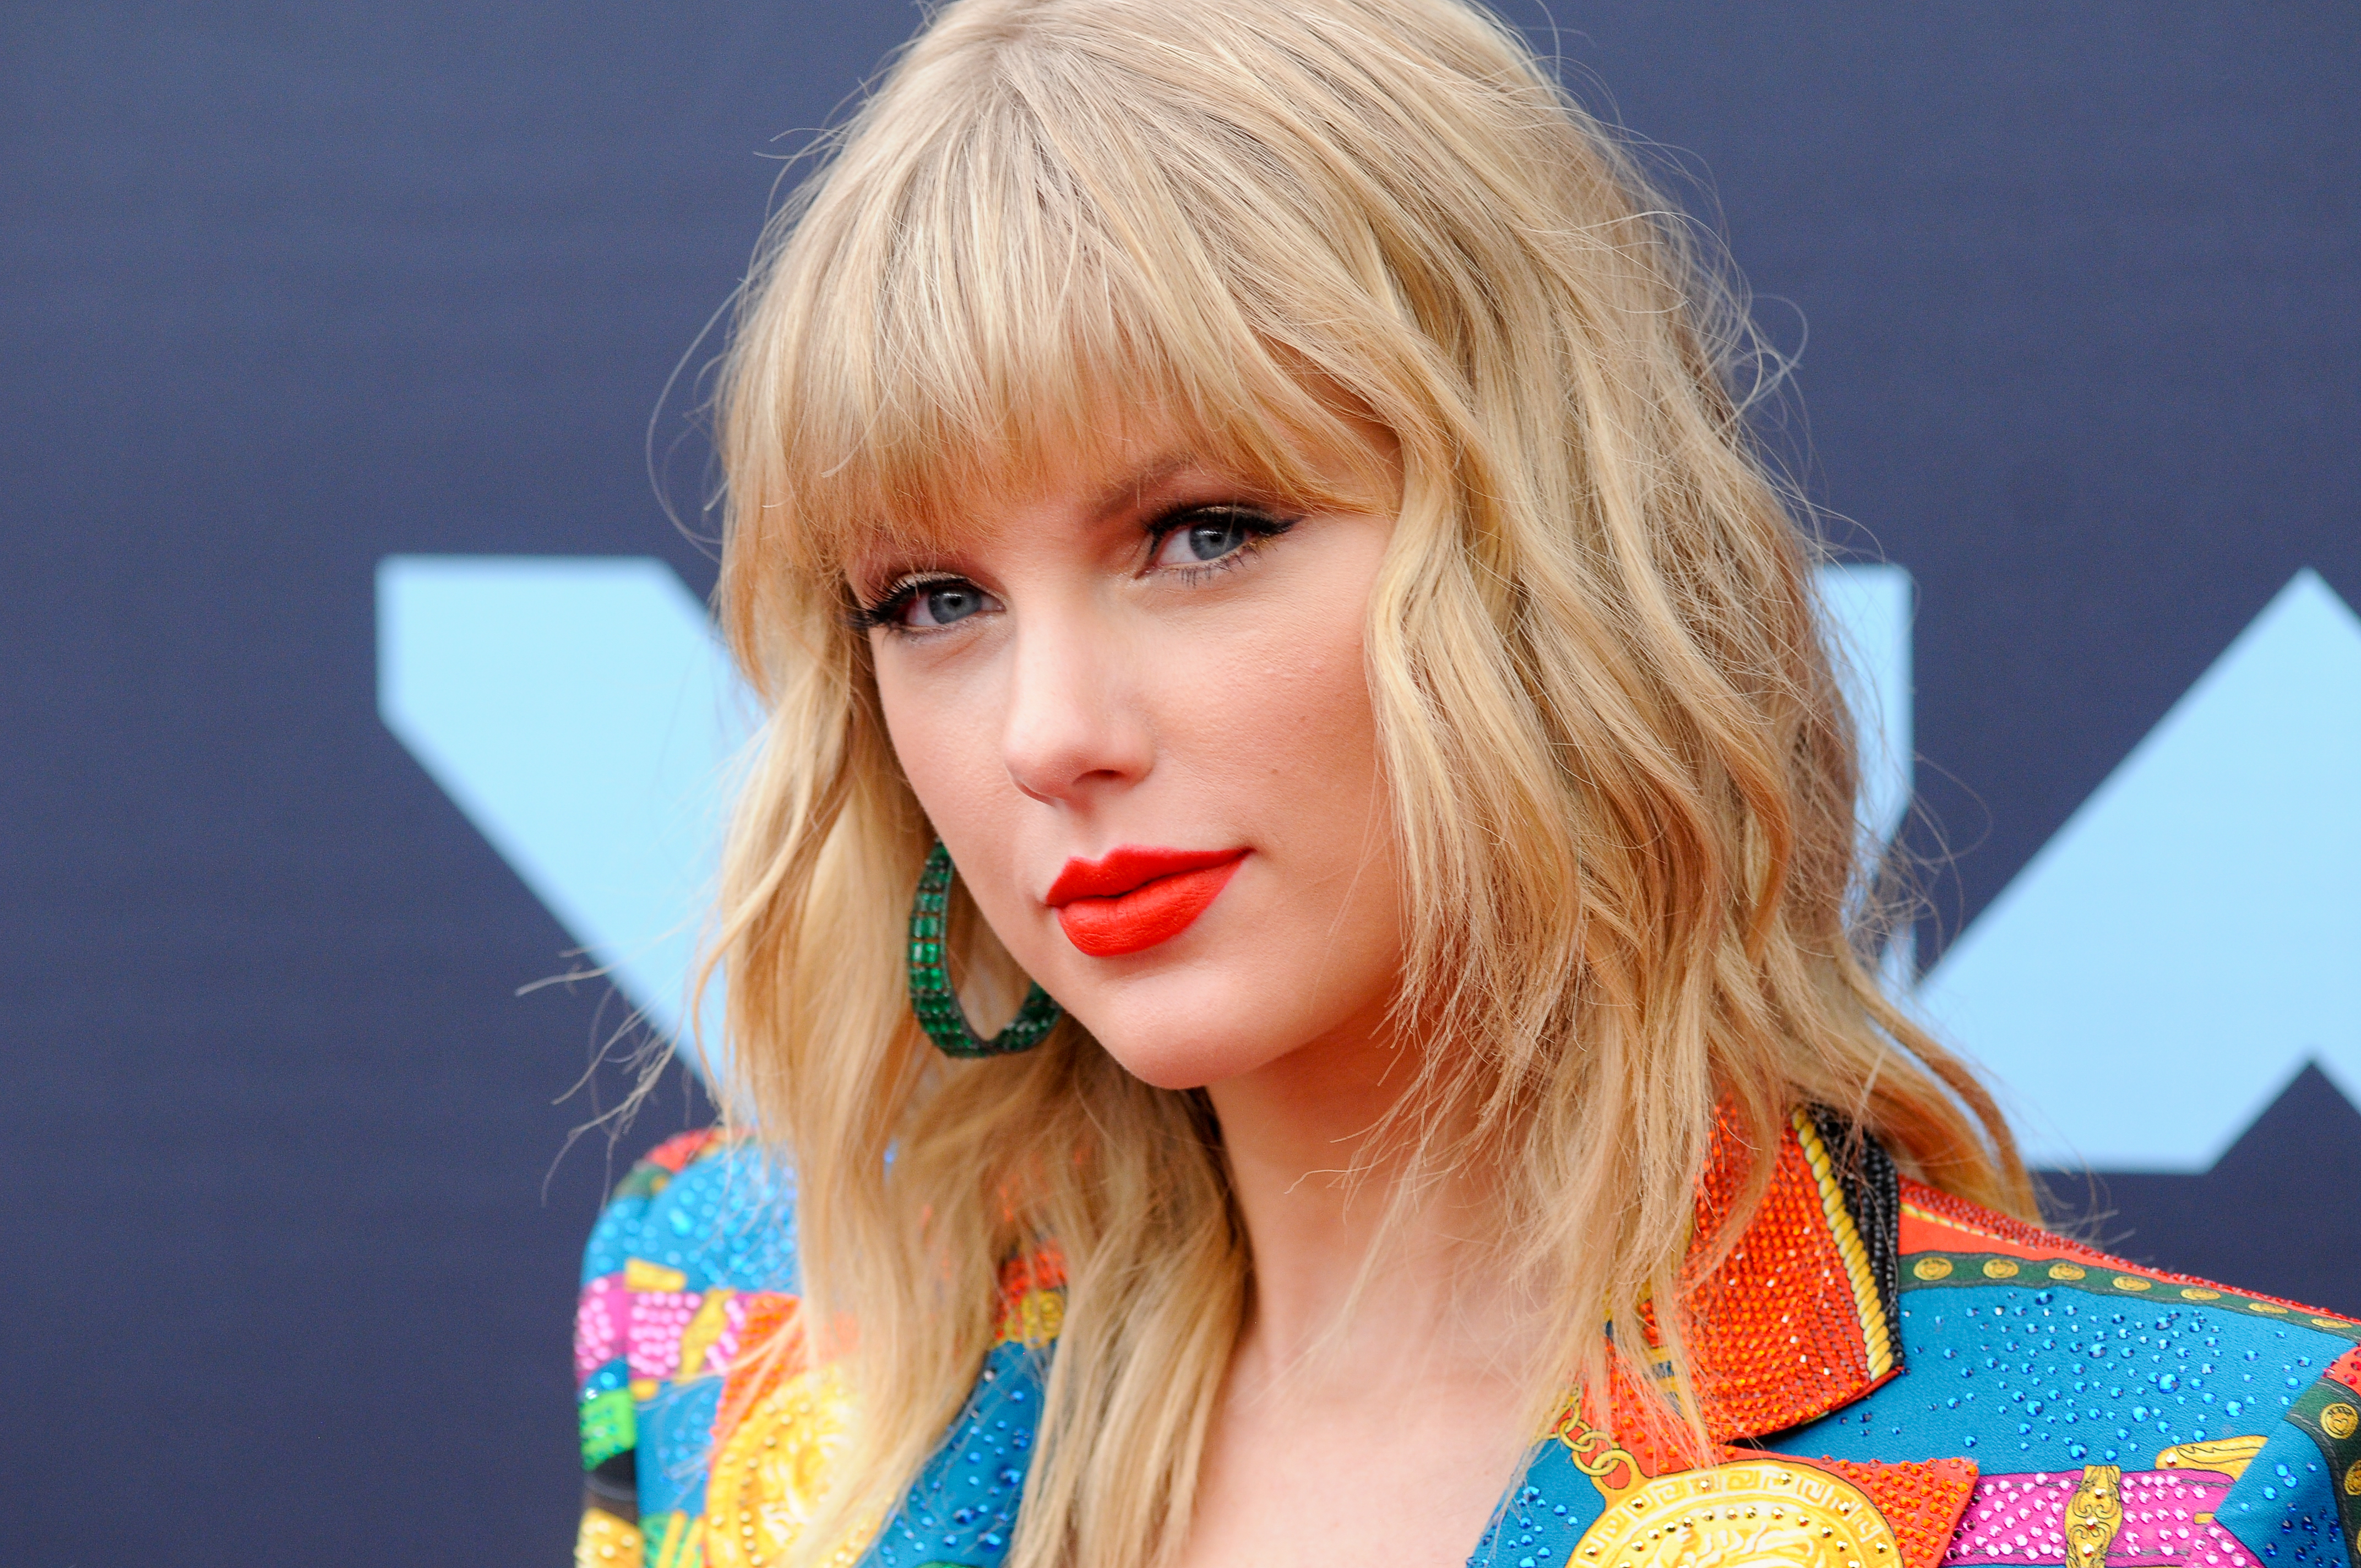 American Blonde Close Up Face Lipstick Singer Taylor Swift 4288x2848